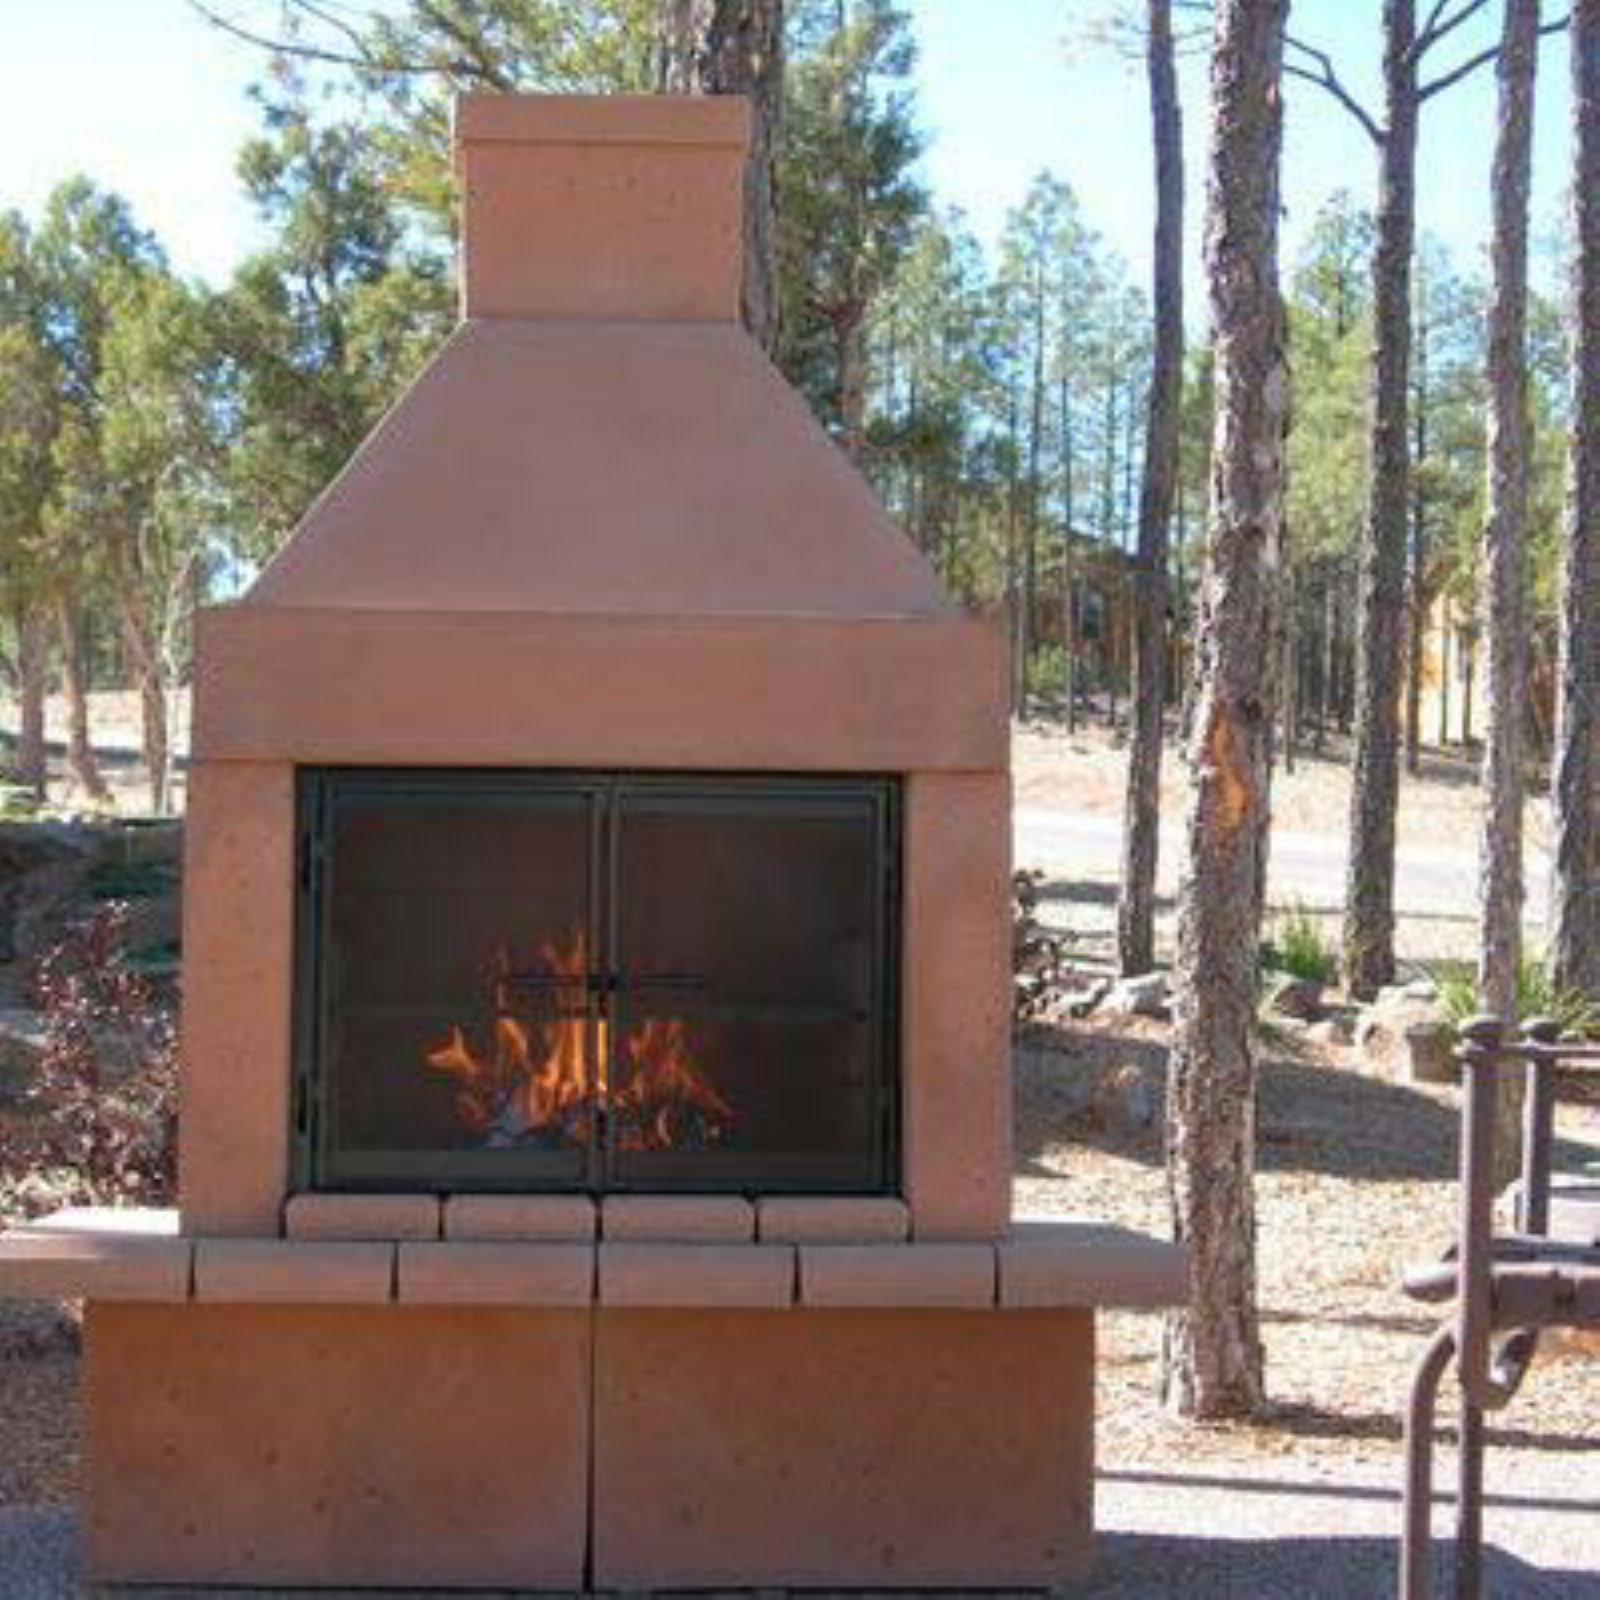 Mirage Stone Wood Burning Outdoor Fireplace with BBQ